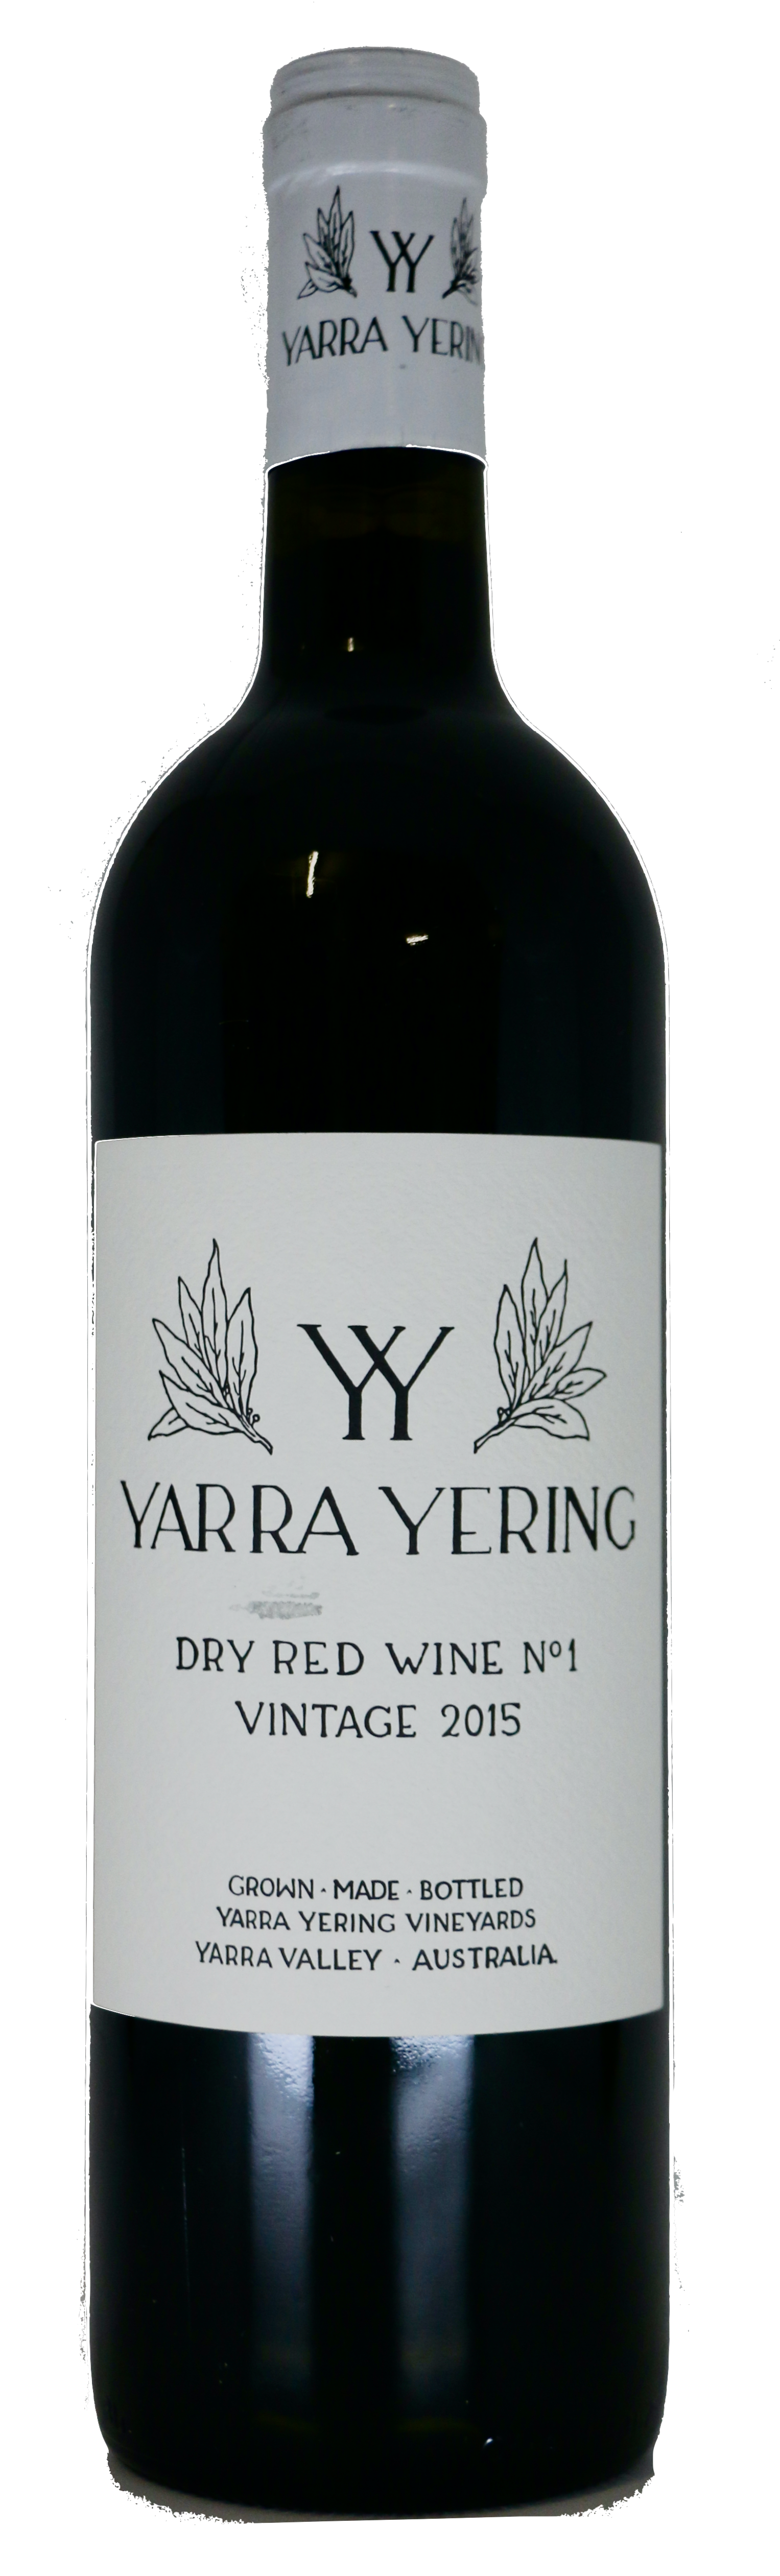 Yarra Yering Dry Red No. 1